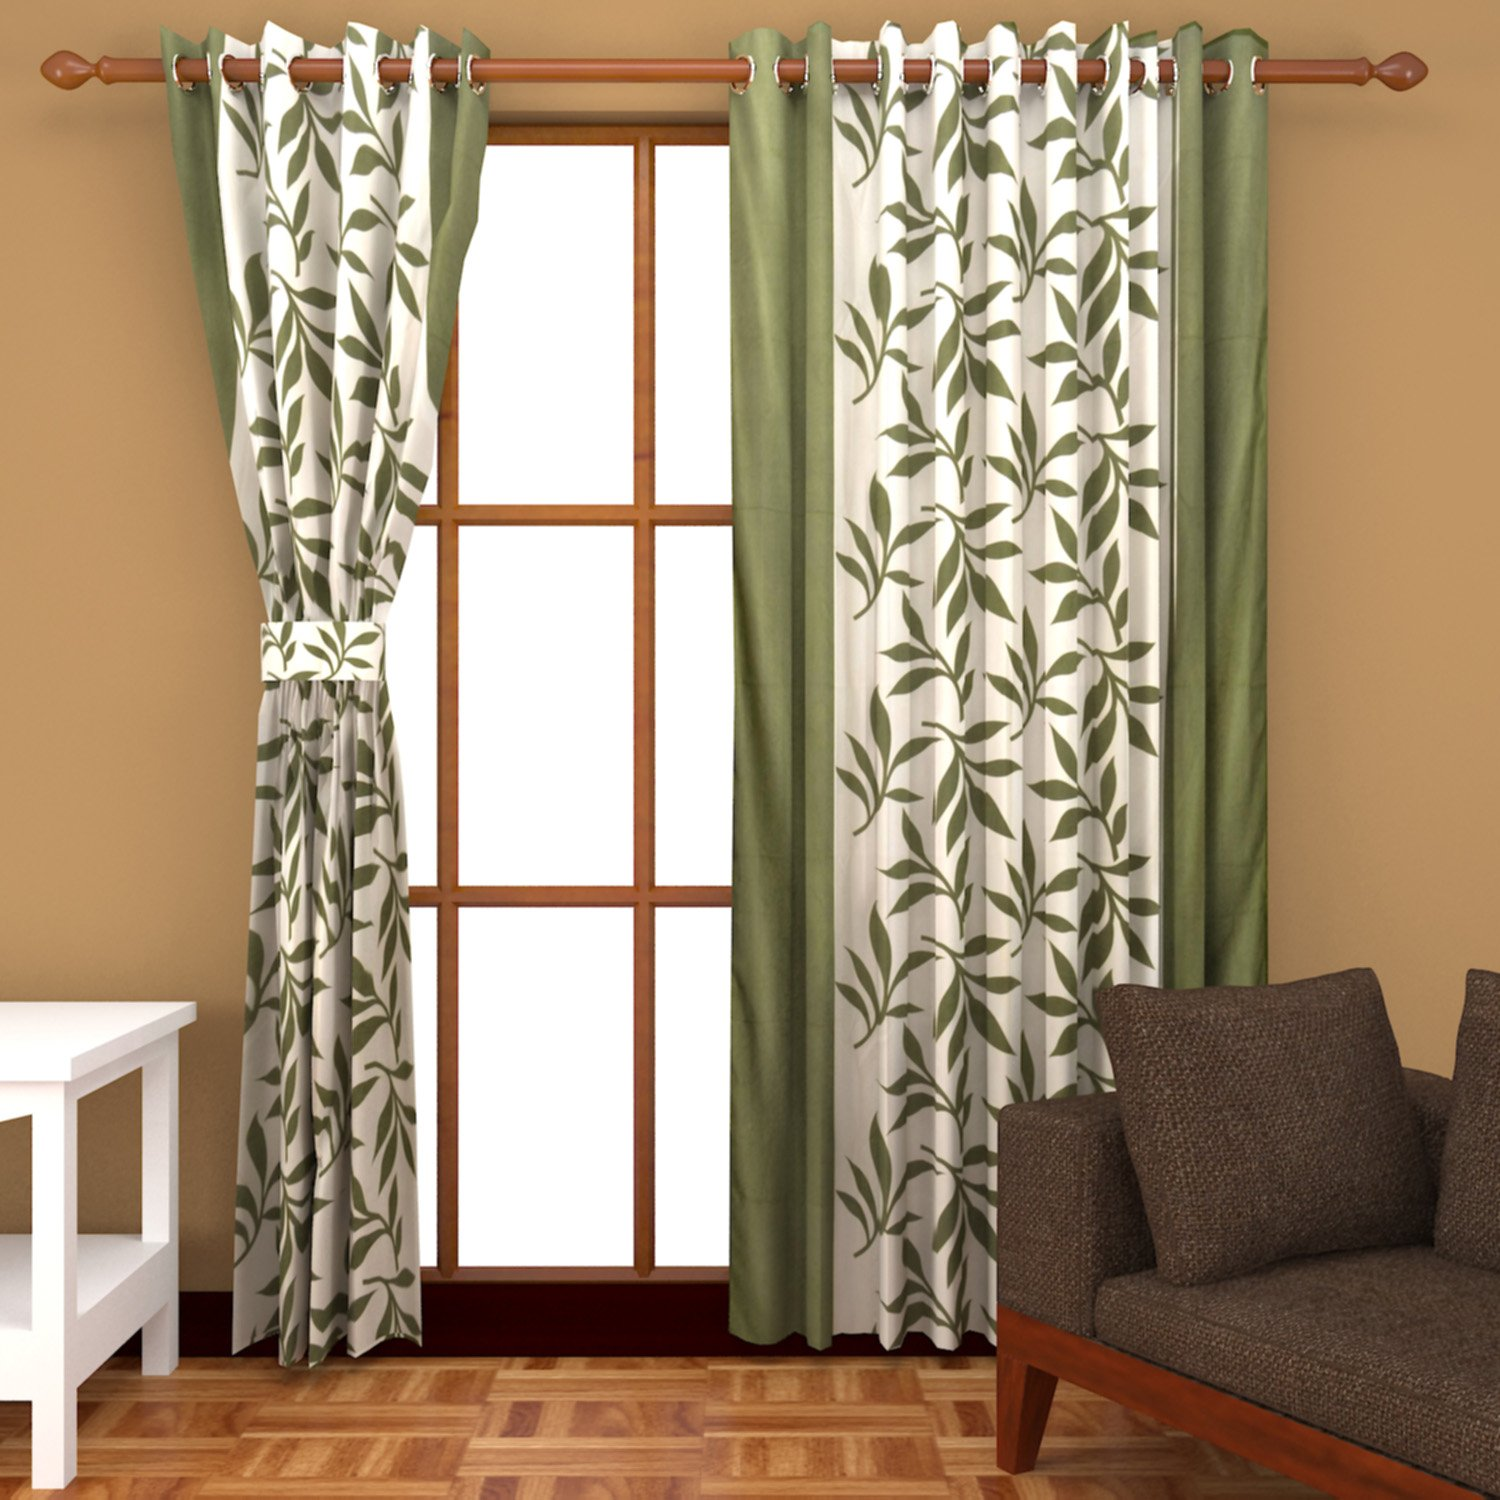 Buy Freehomestyle Floral Window Curtains Green Set of 3 Online